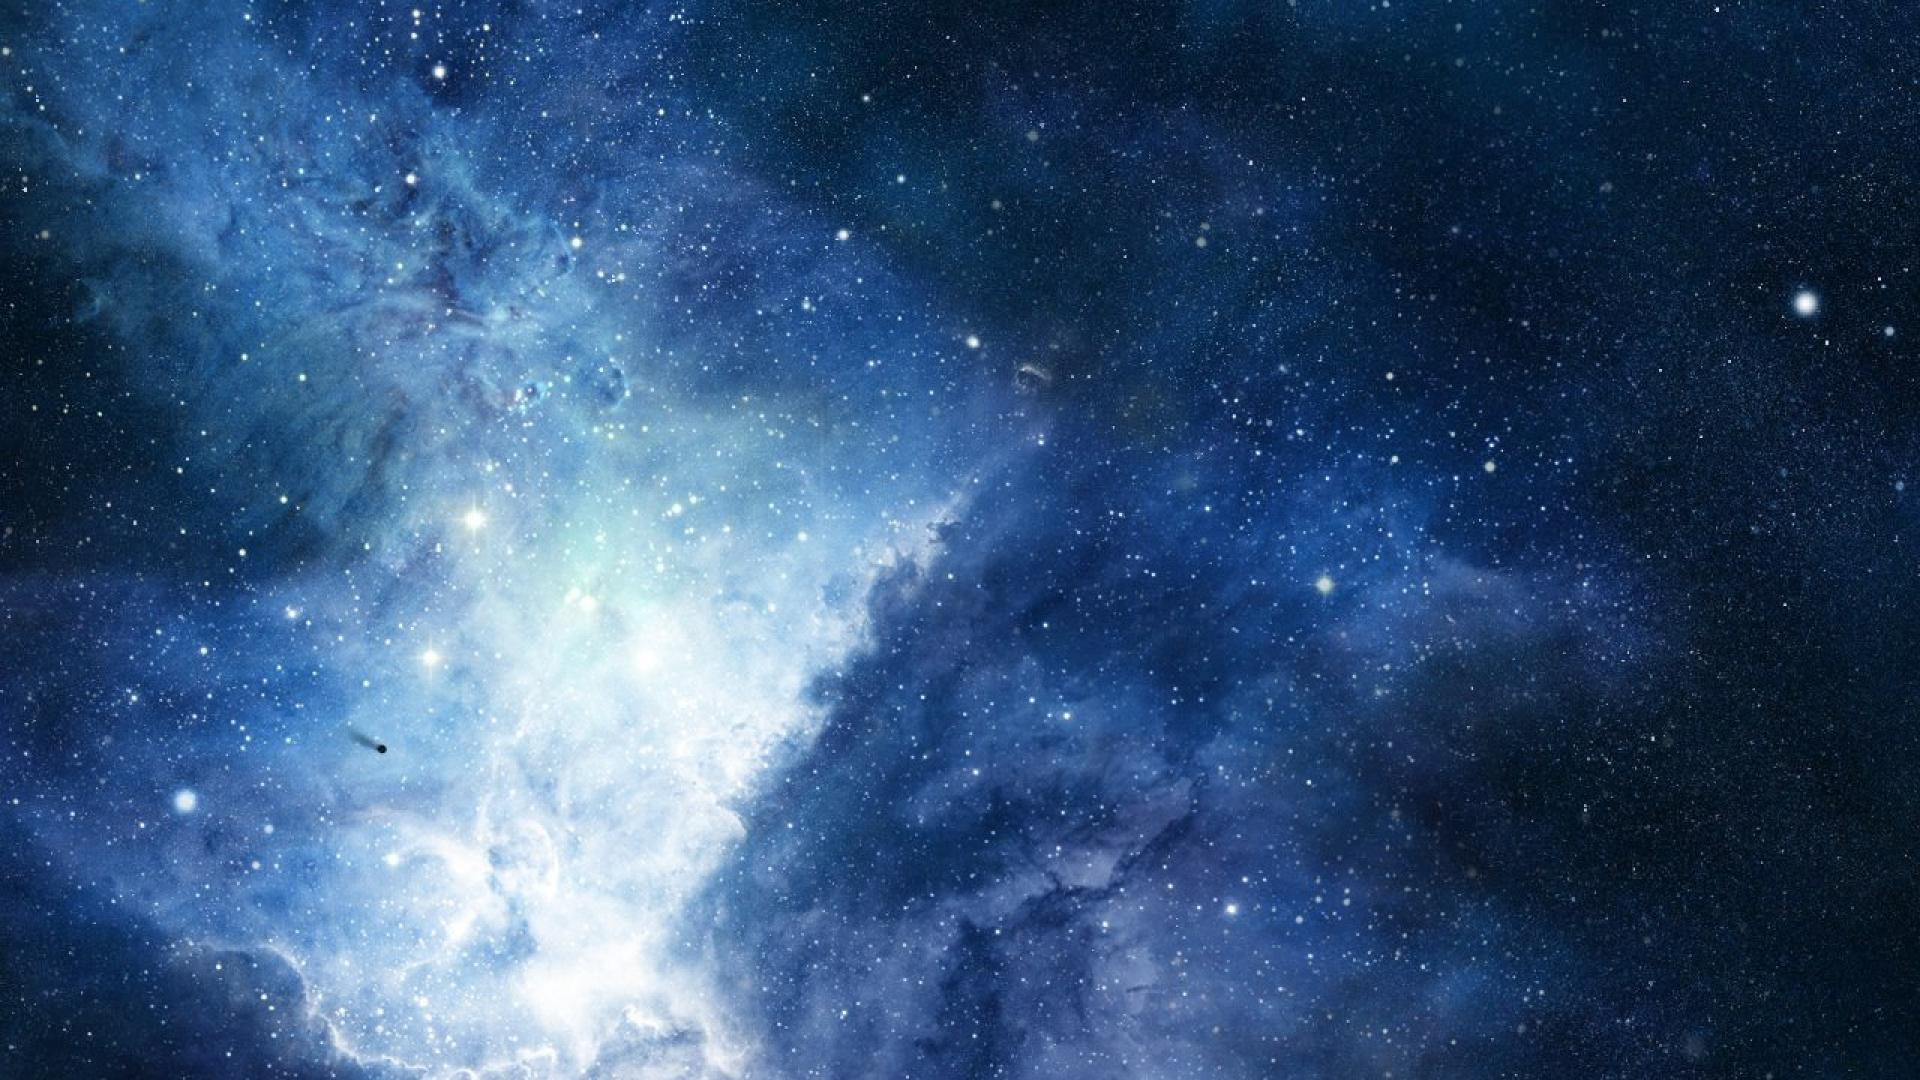 stars wallpaper hd wallpapersafari